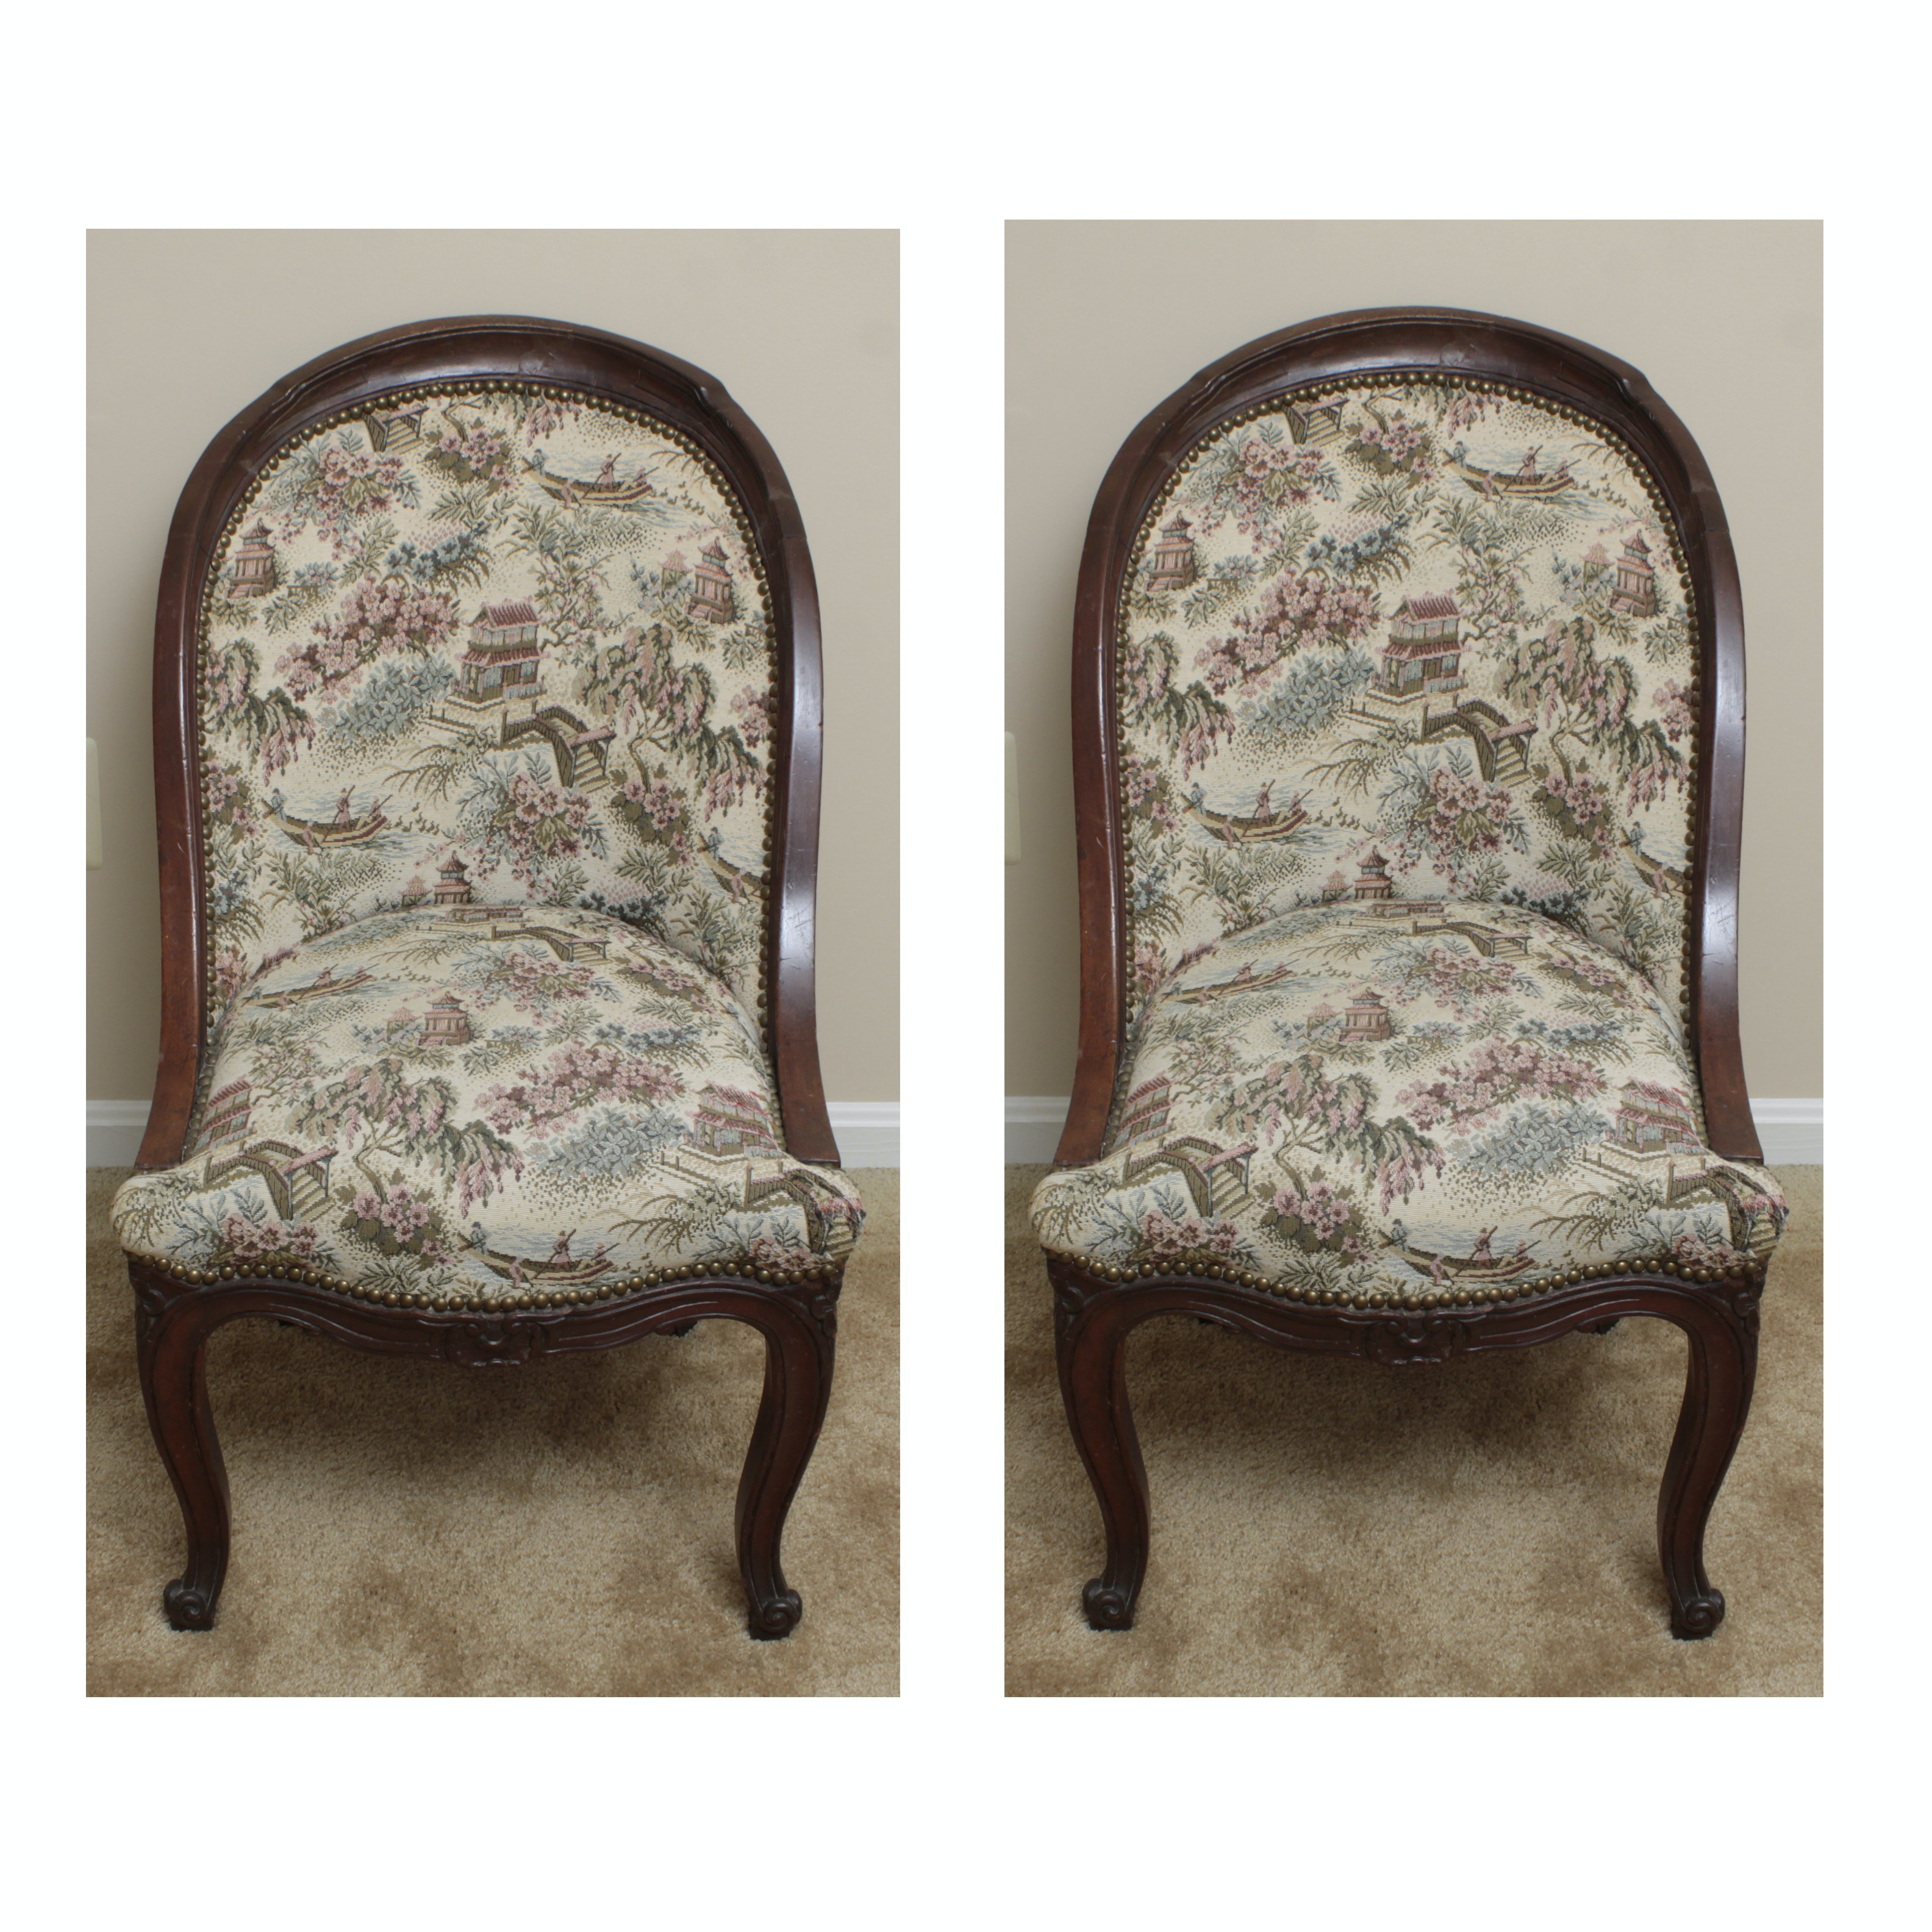 Pair Of Antique Accent Chairs With Chinoiserie Upholstery ...